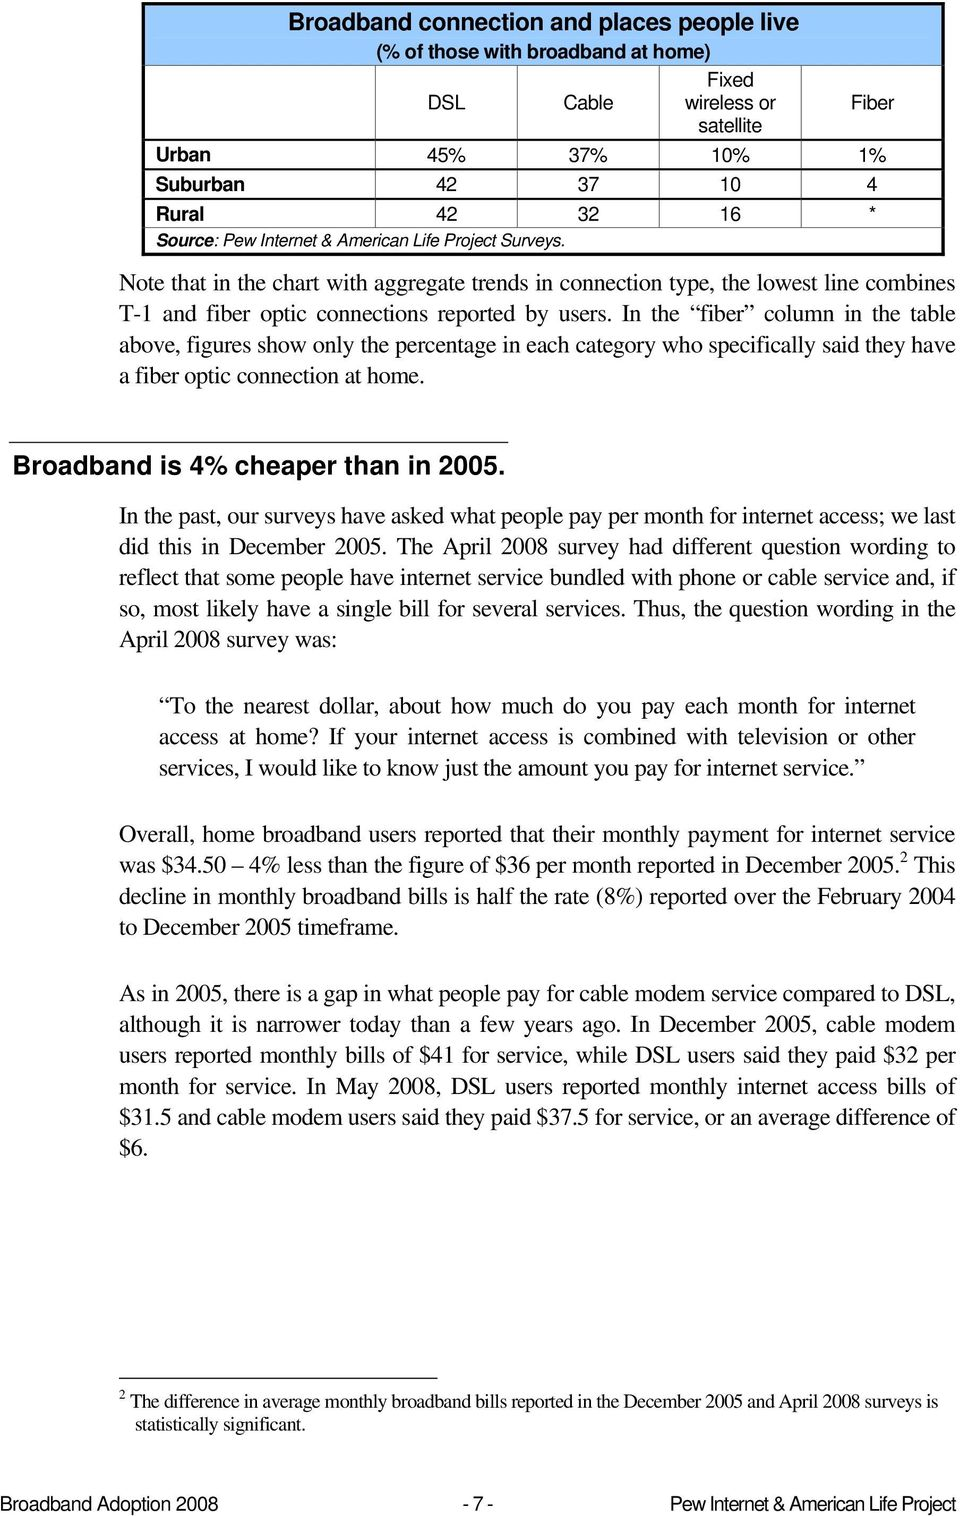 In the fiber column in the table above, figures show only the percentage in each category who specifically said they have a fiber optic connection at home. Broadband is 4% cheaper than in 2005.